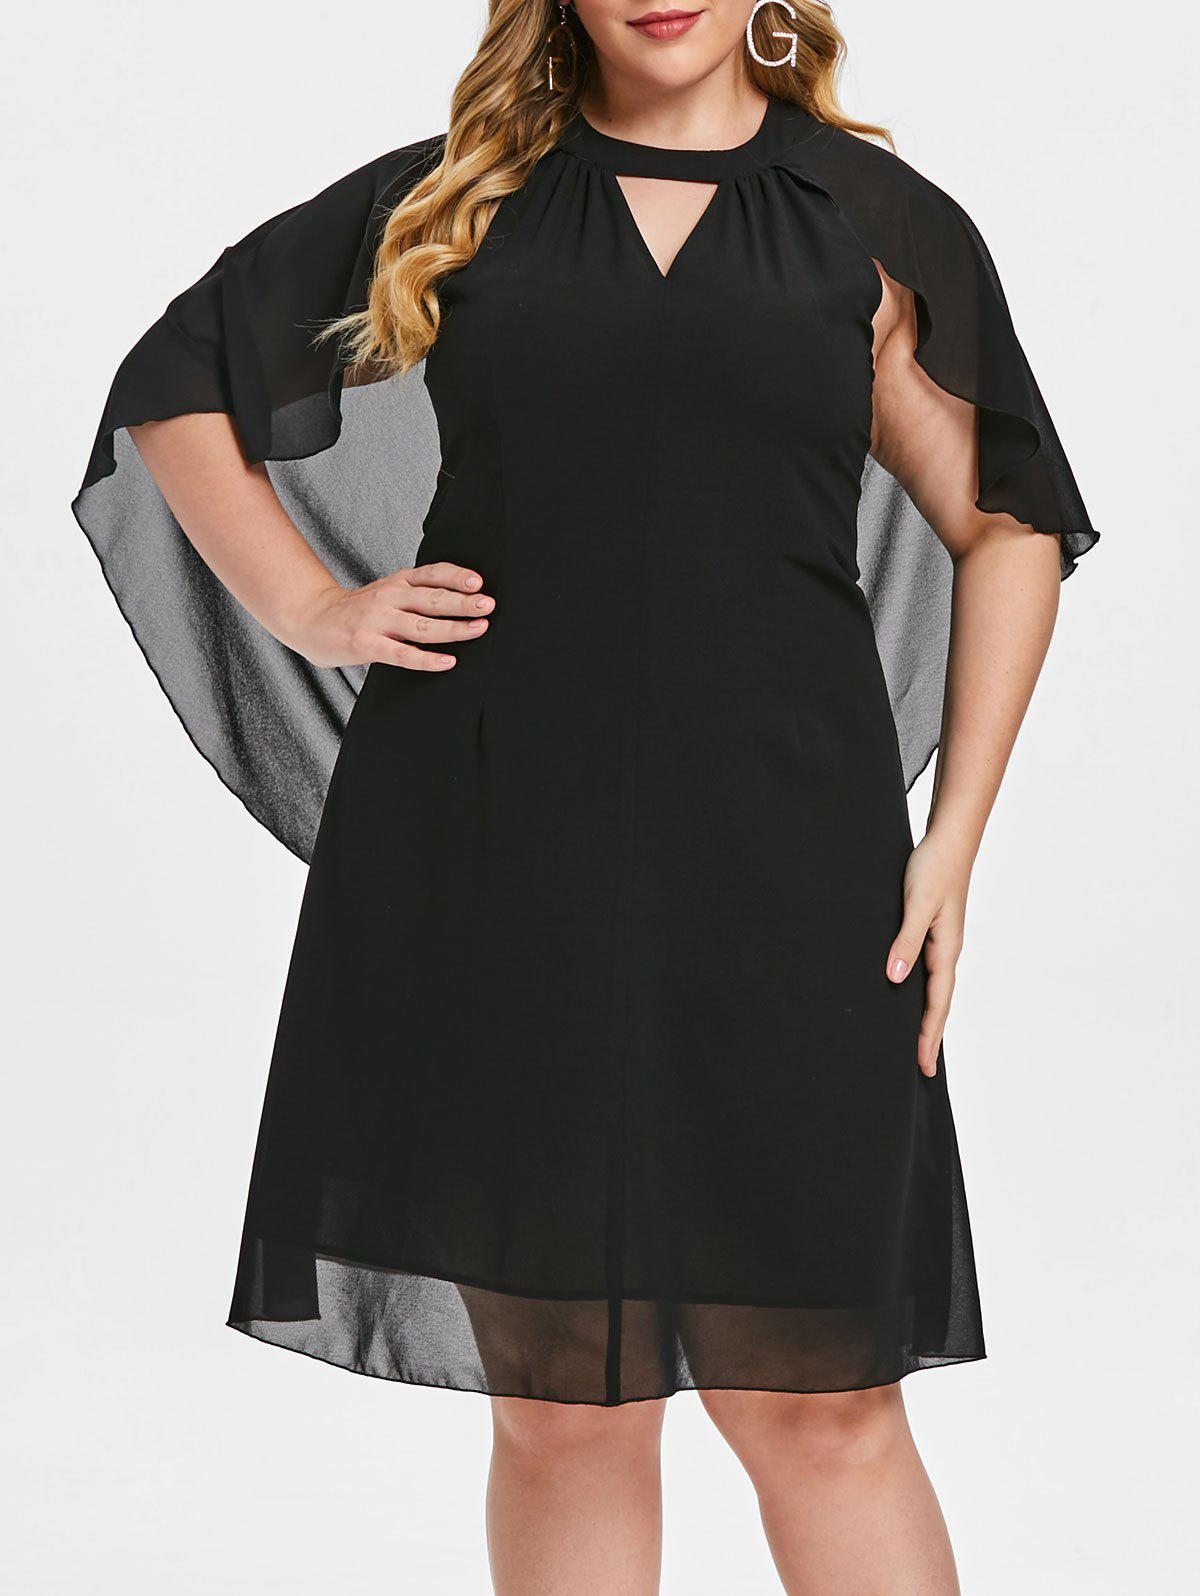 Plus Size Solid Color Cut Out Batwing Sleeve Dress фото